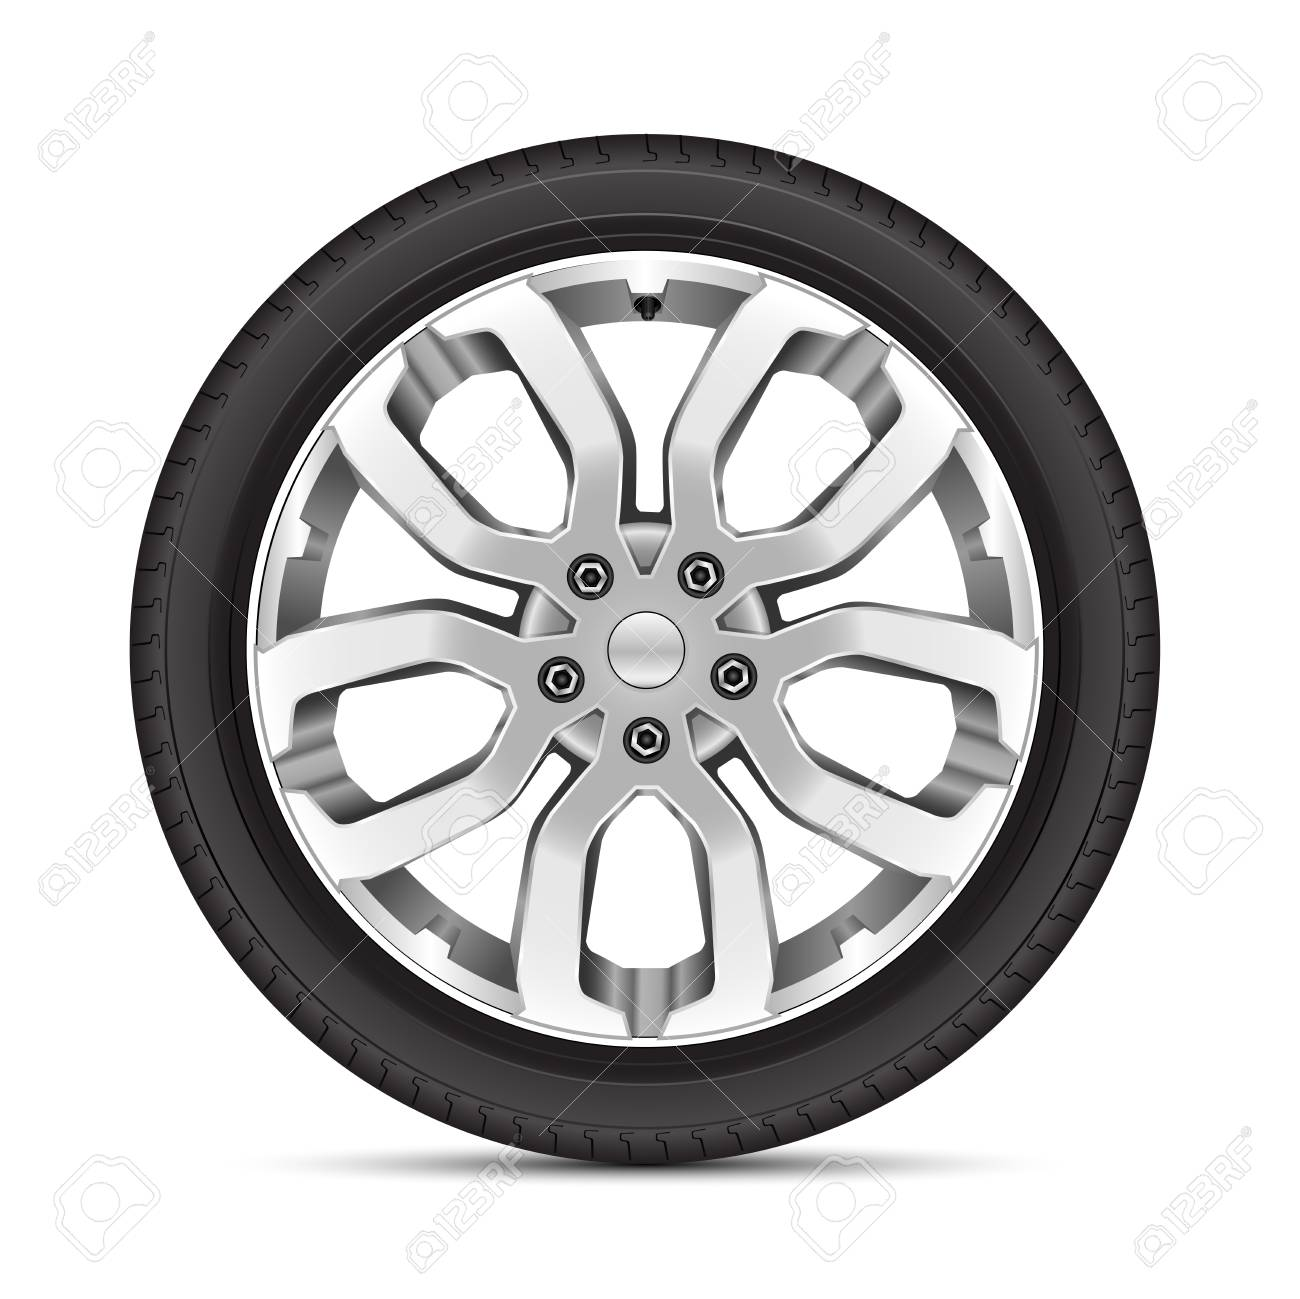 Realistic Car Wheel Alloy Sport On White Background Vector Illustration Royalty Free Cliparts Vectors And Stock Illustration Image 107531486